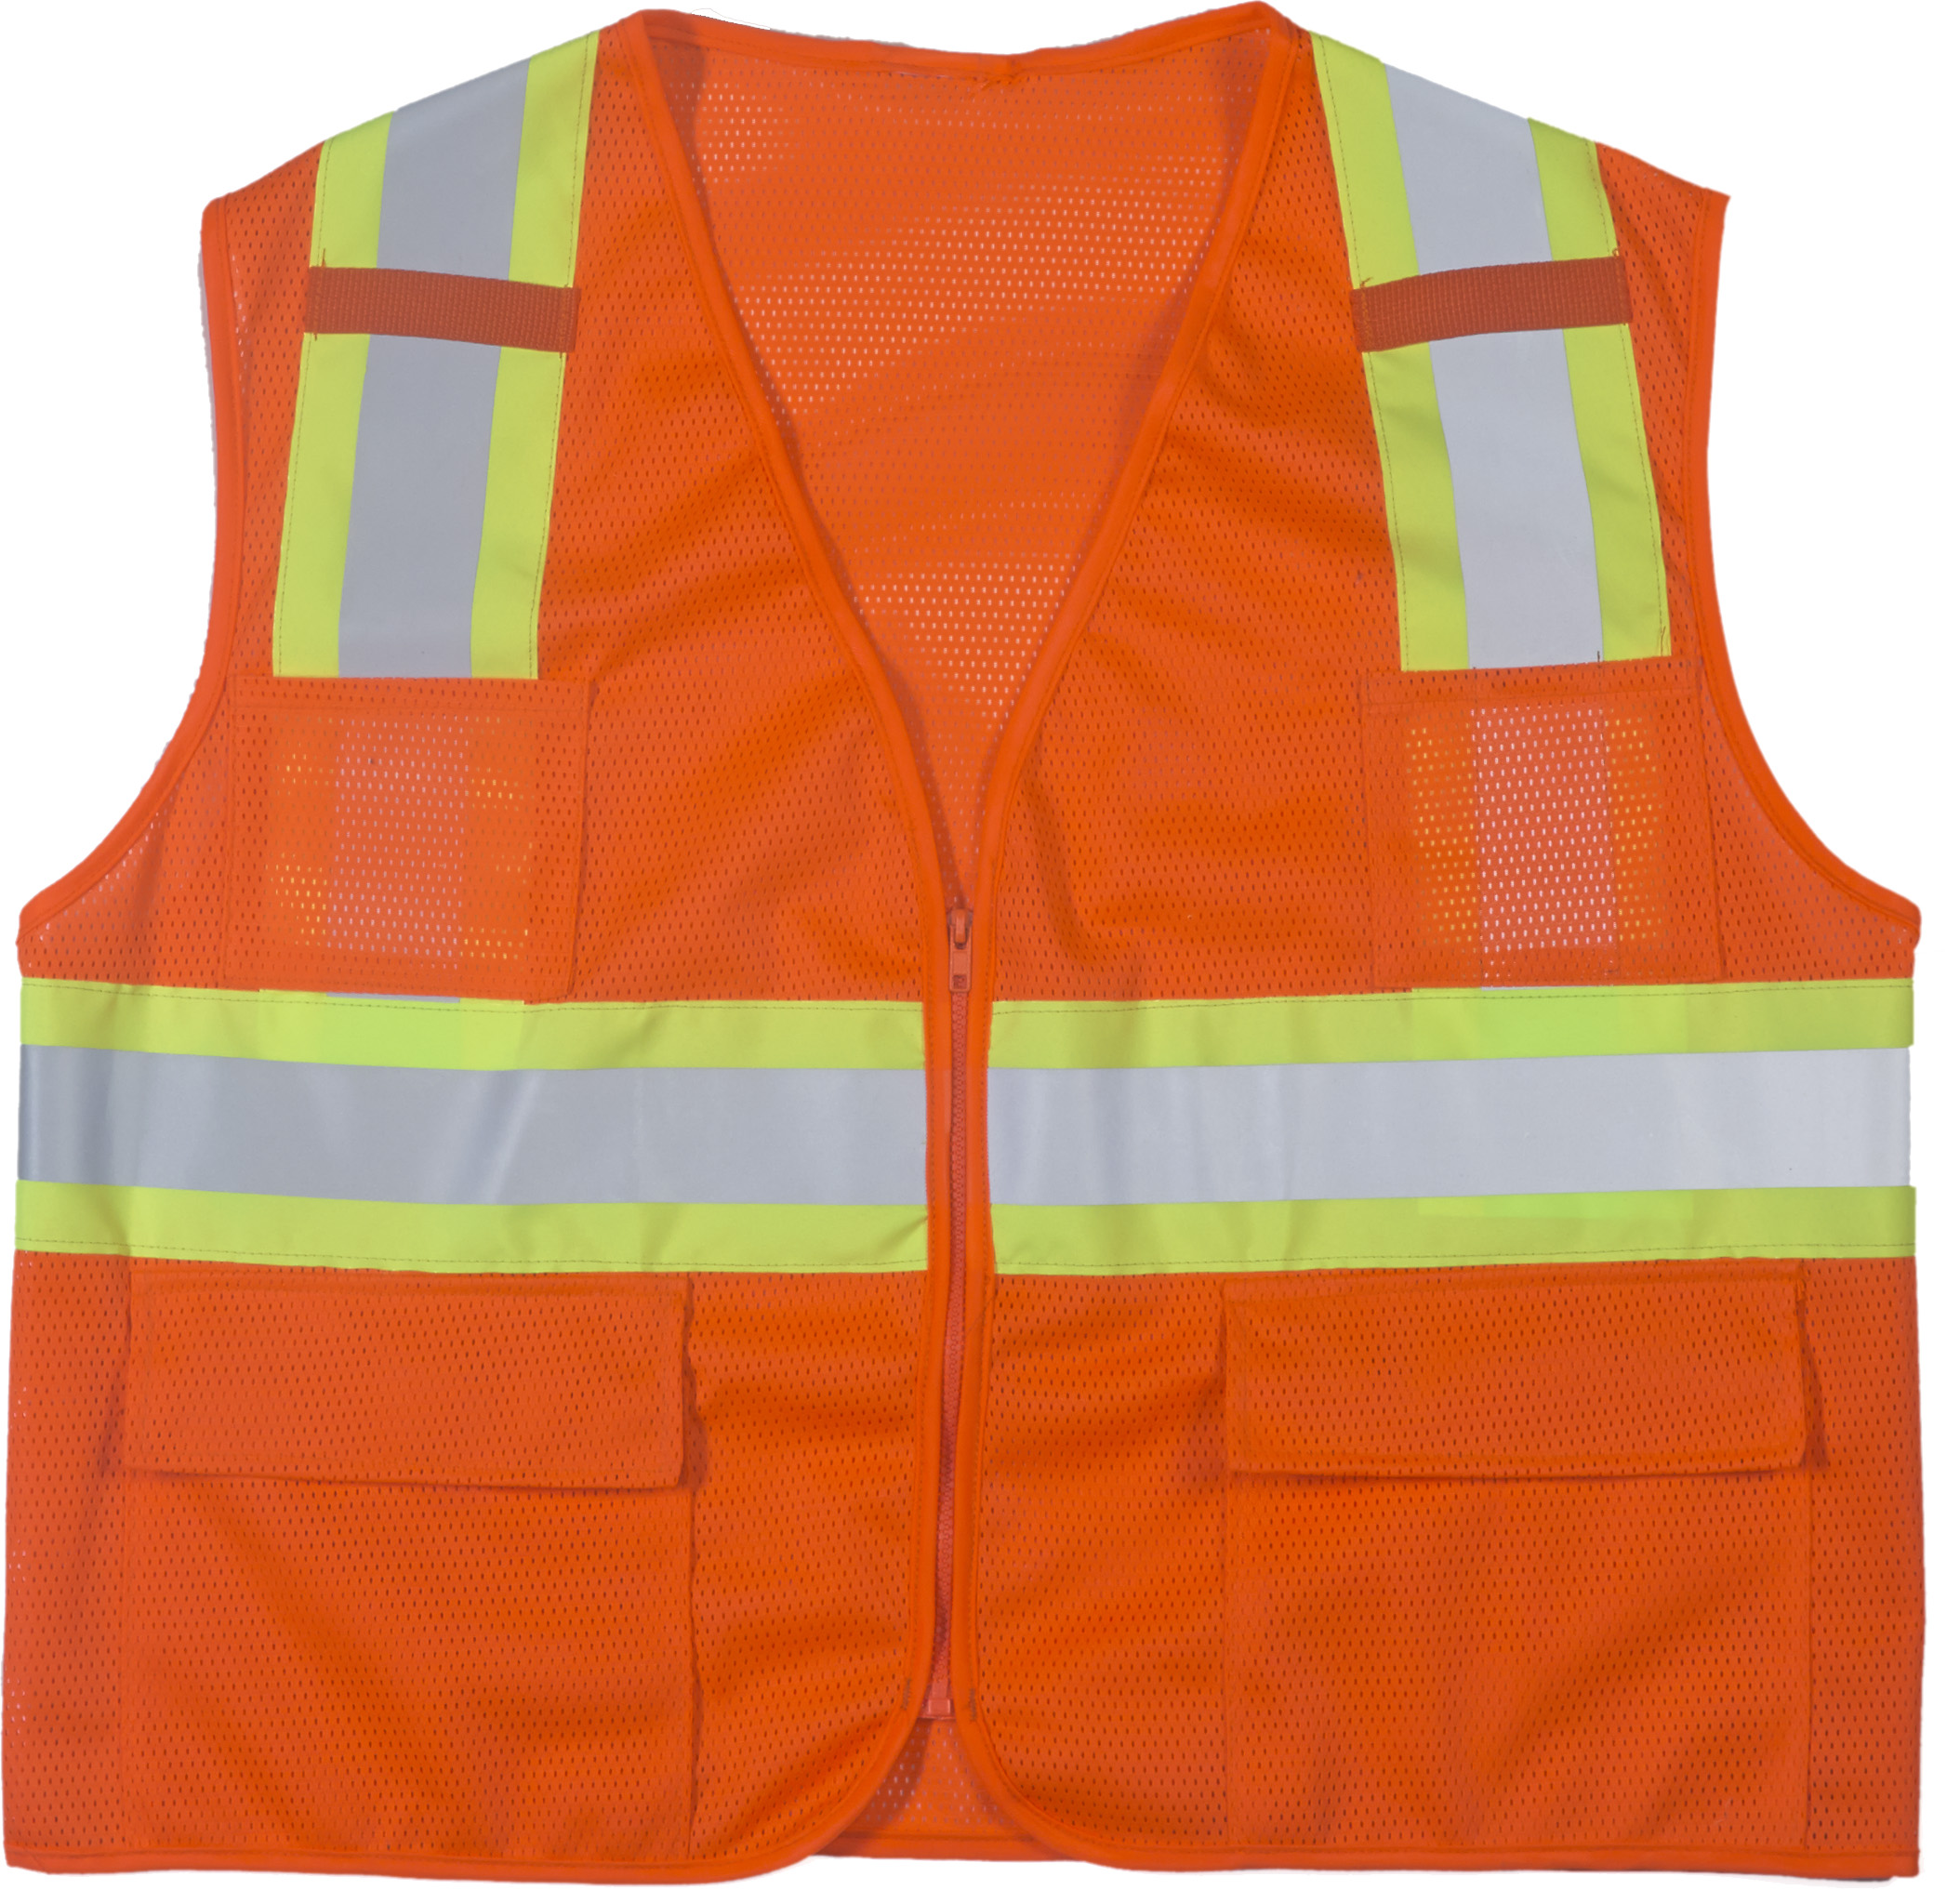 "High Visibility Polyester ANSI Class 2 Surveyor Safety Vest with Pouch Pockets and 4"" Lime/Silver/Lime Reflective Tape, 2X-Large, Orange"